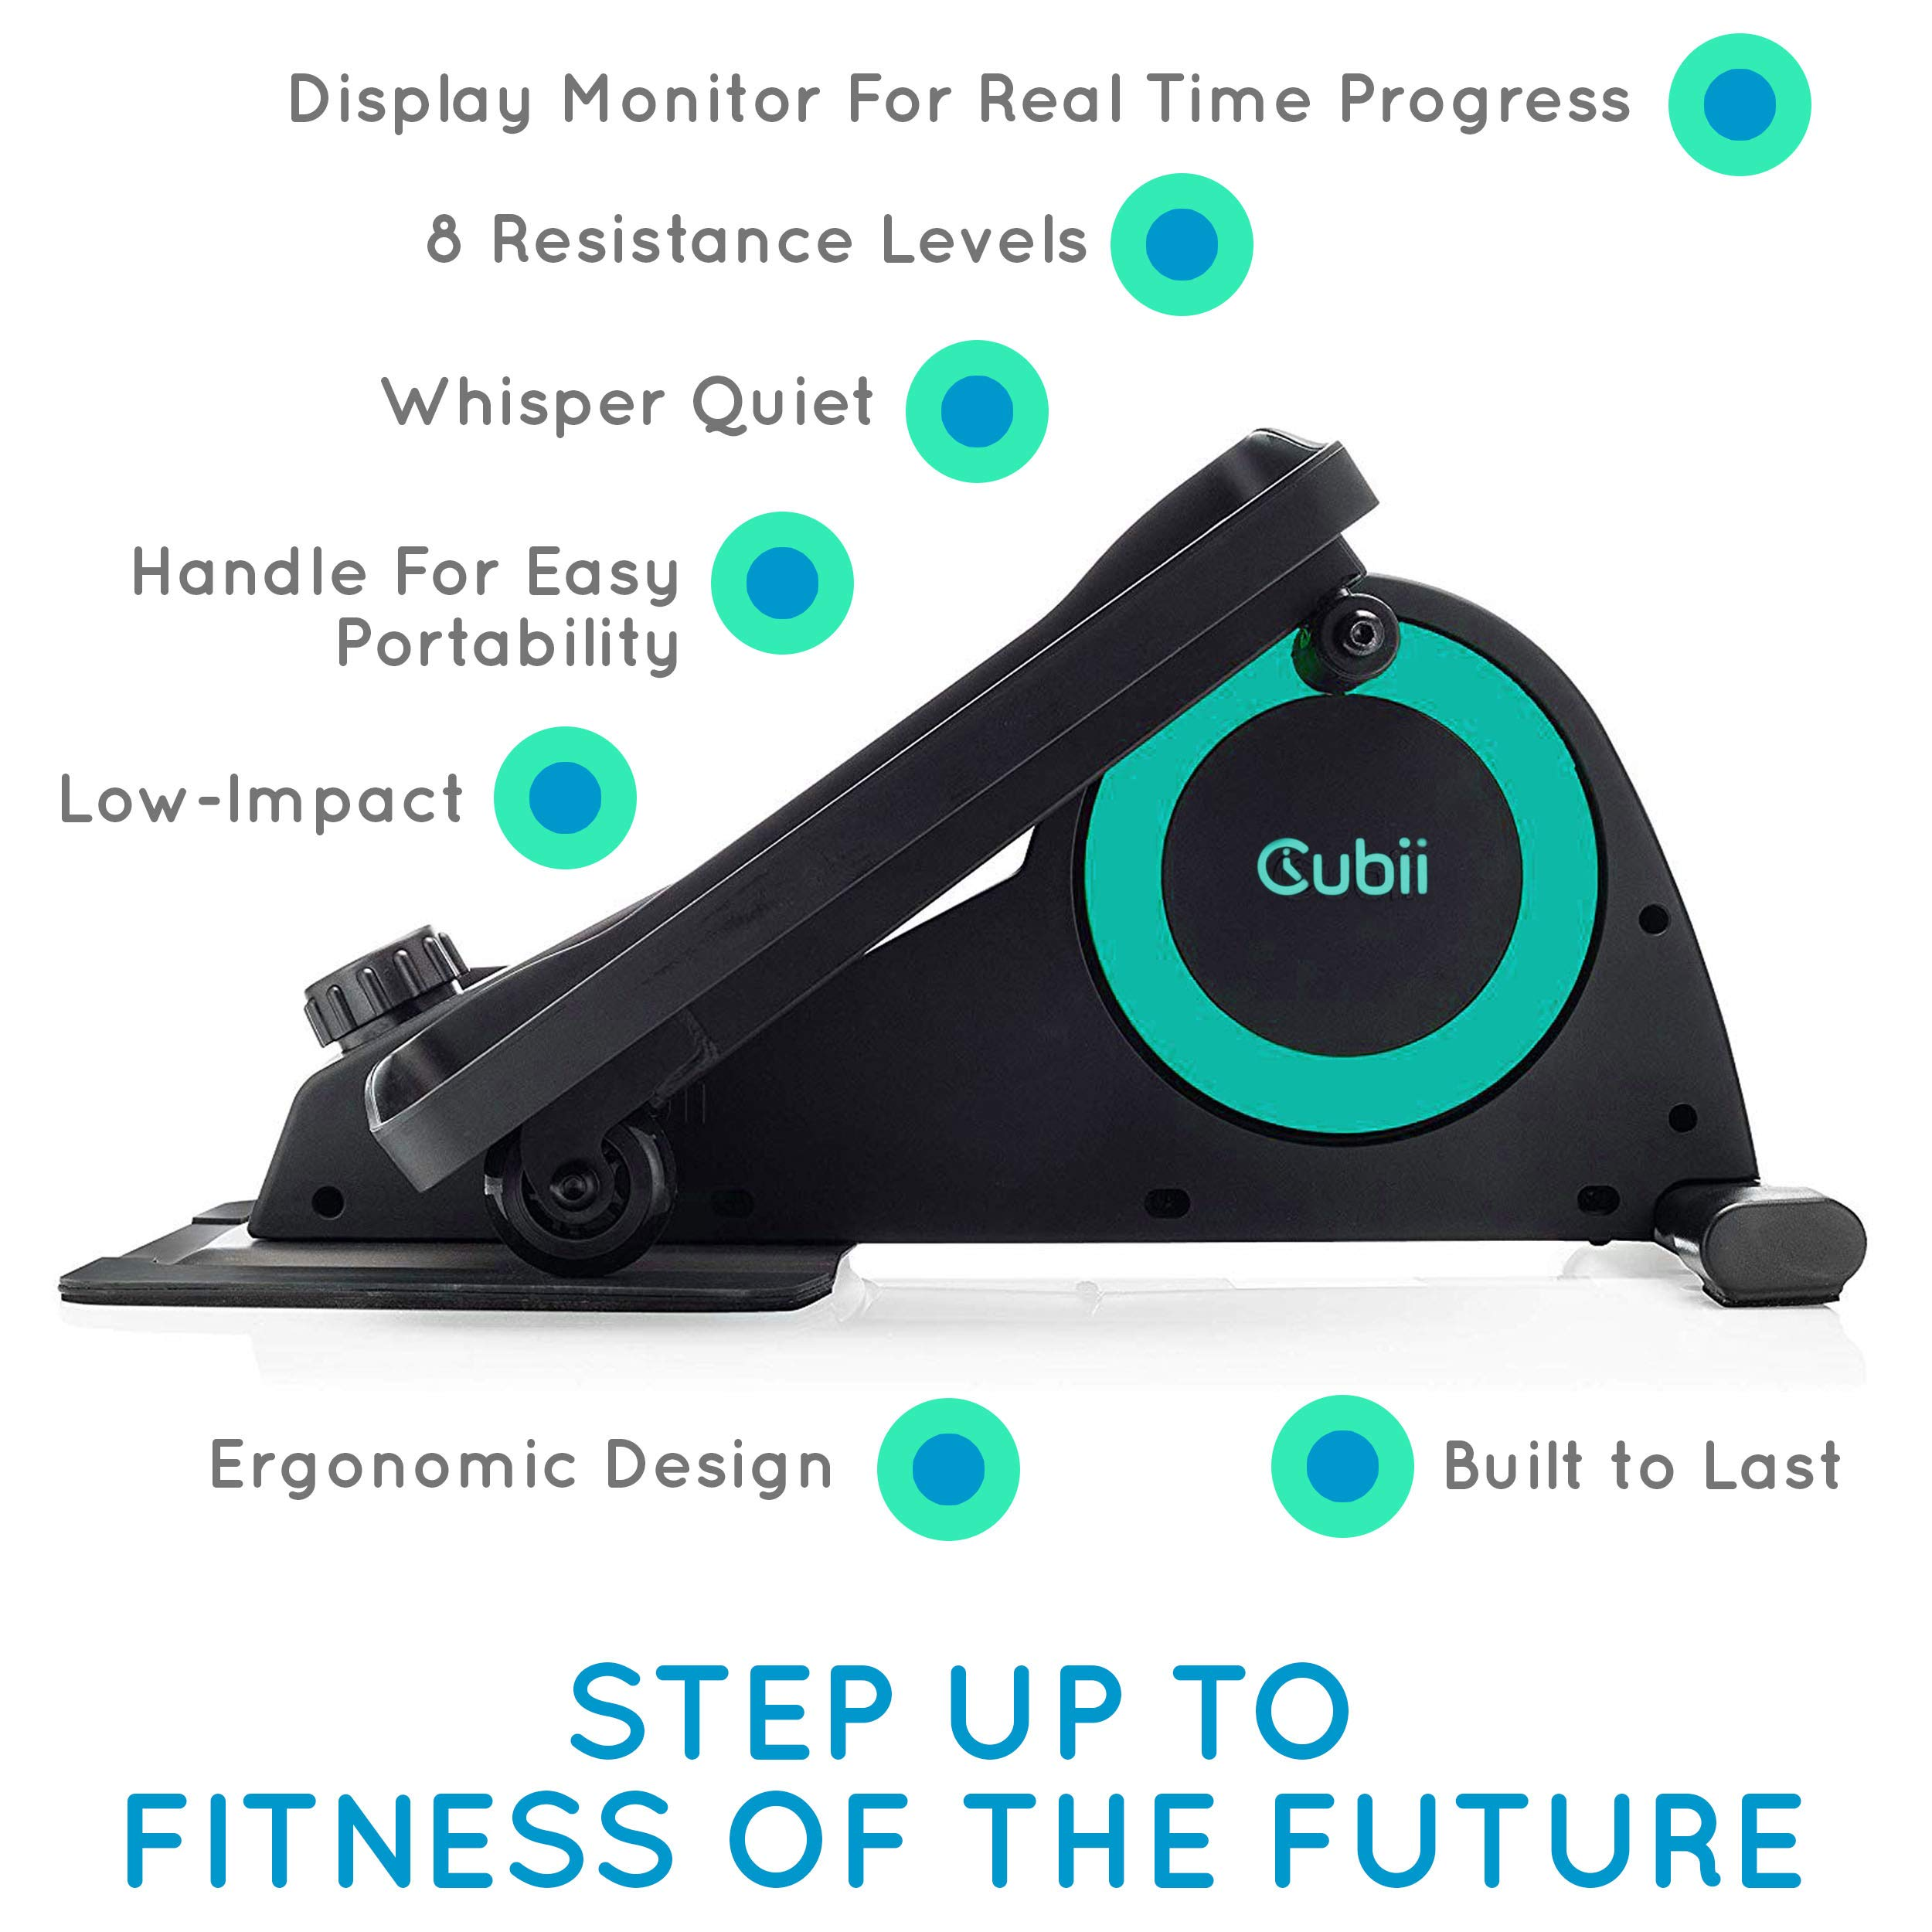 Cubii Jr: Desk Elliptical with Built in Display Monitor, Easy Assembly, Quiet & Compact, Adjustable Resistance (Turquoise) by Cubii (Image #2)